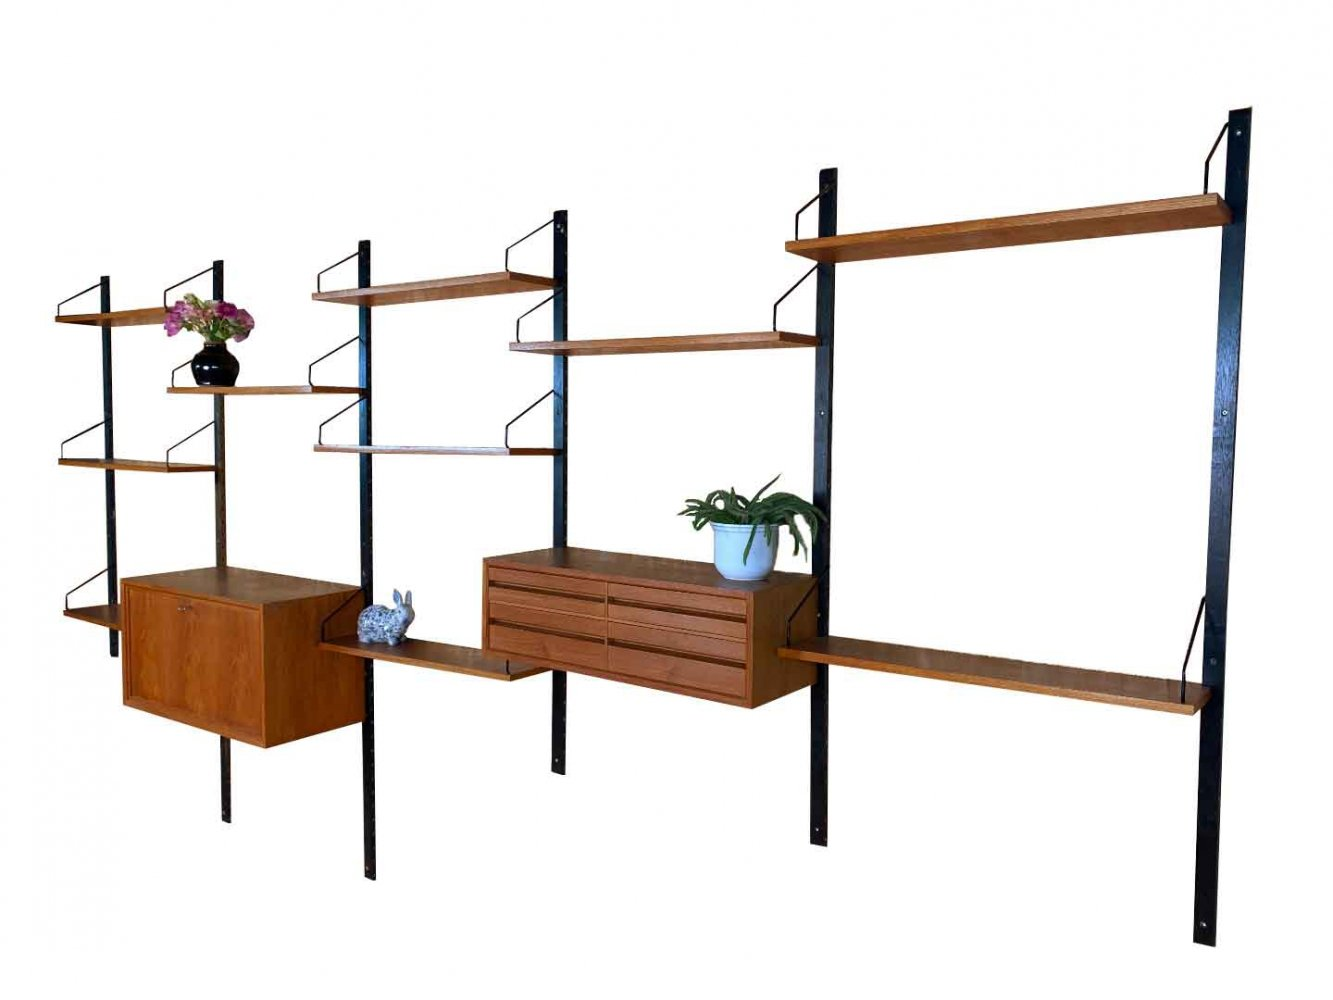 Royal System wall unit by Poul Cadovius for Cado, Denmark 1960